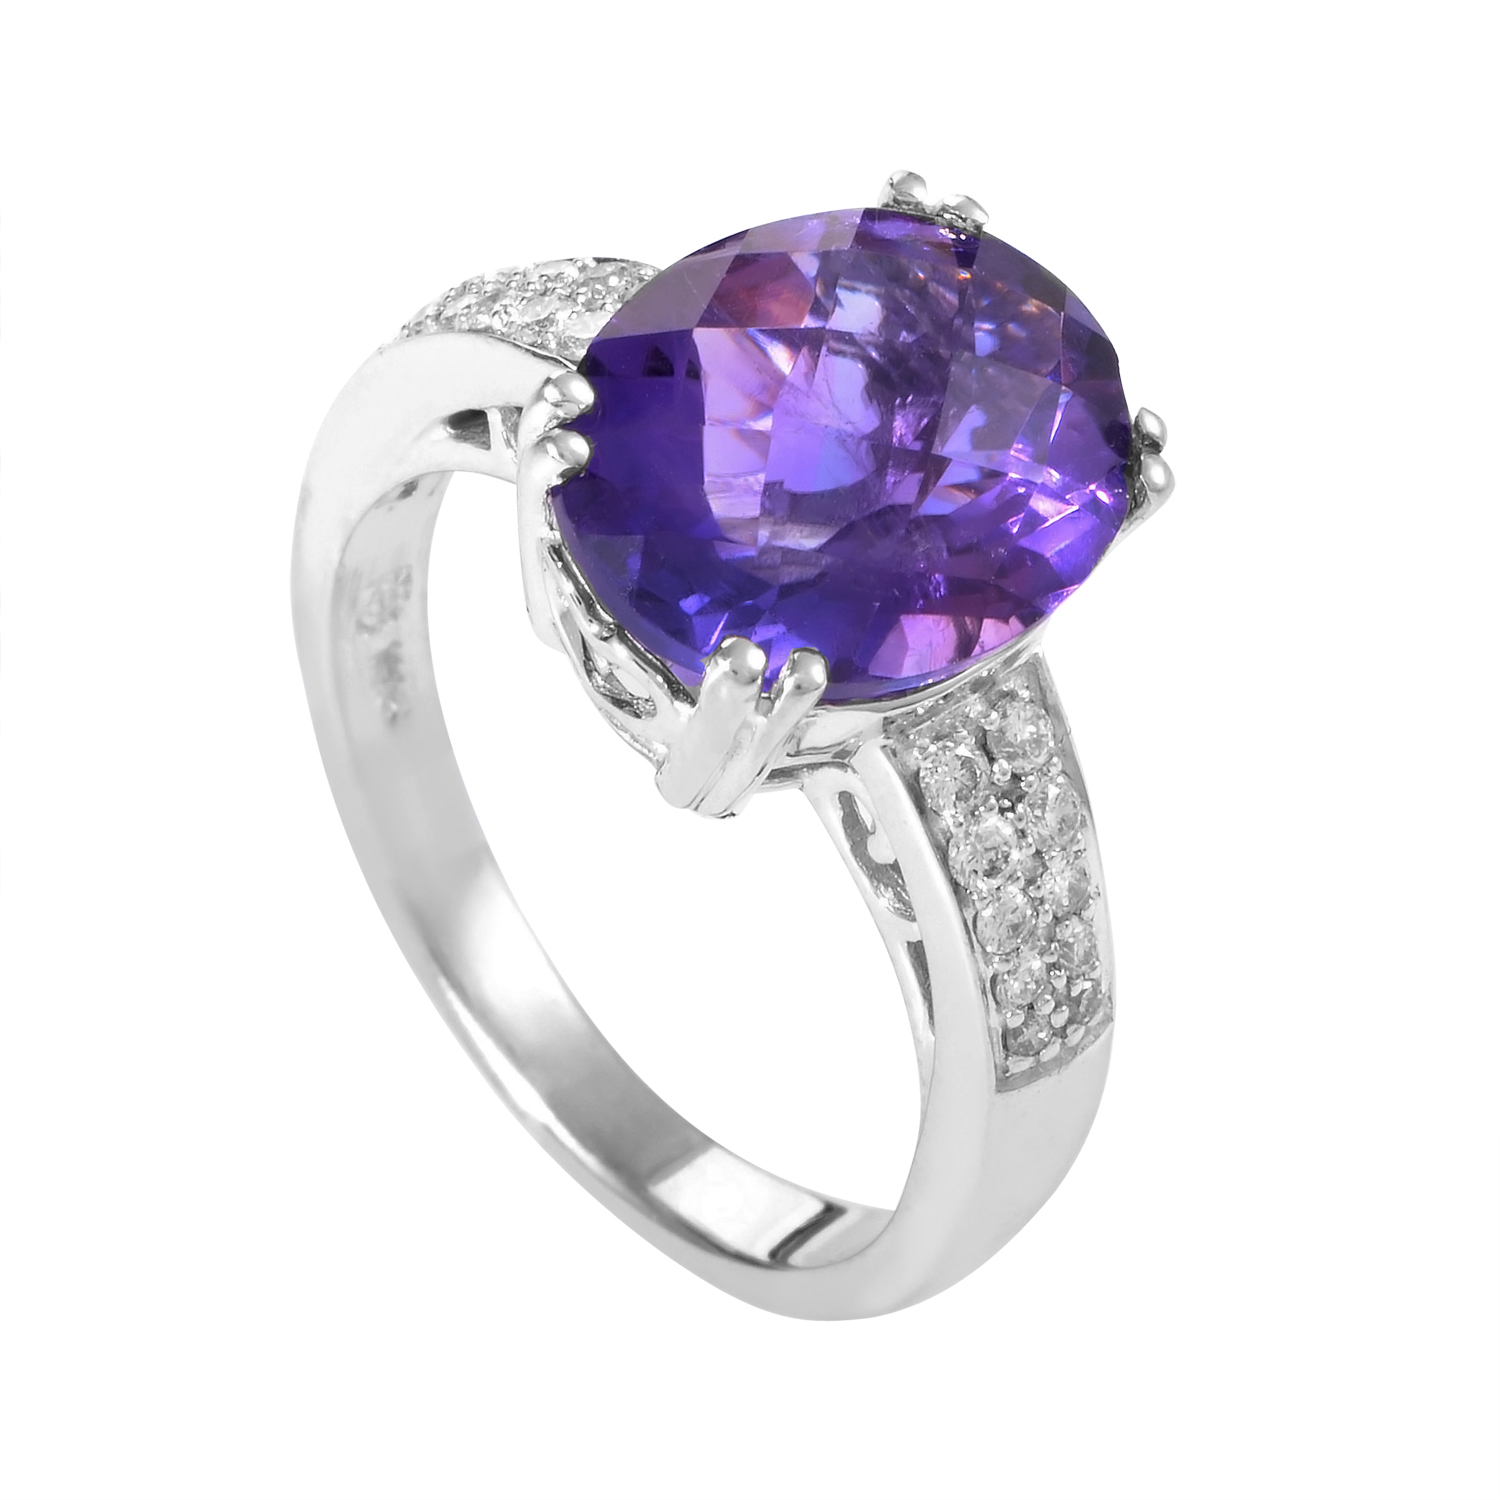 14K White Gold Amethyst & Diamond Ring RC4-10062WAM